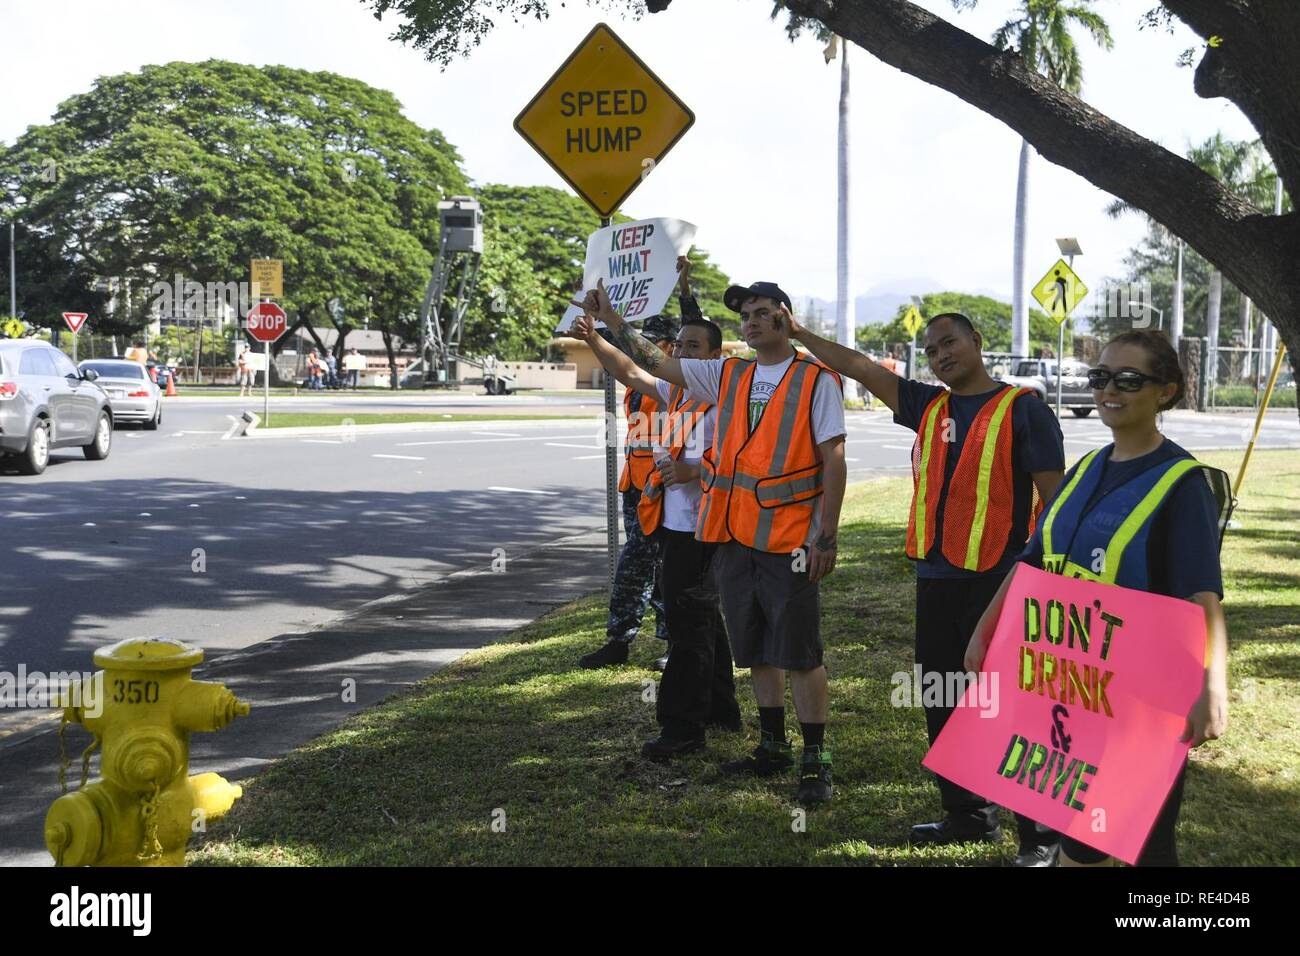 PEARL HARBOR (Nov. 23, 2016) Service members rally at the Joint Base Pearl Harbor-Hickam gates to remind drivers to not drink and drive, Nov. 23. Petty Officer 2nd Class Shaylee Stewart organized the event partnering with Master Chief Suz Whitman, U.S. Pacific Fleet Master Chief, and JBPHH organizations Coalition of Sailors Against Destructive Decisions, Airmen Against Drinking and Driving, Chief Petty Officer 365 and the command's Drug and Alcohol Program advisors. Stock Photo